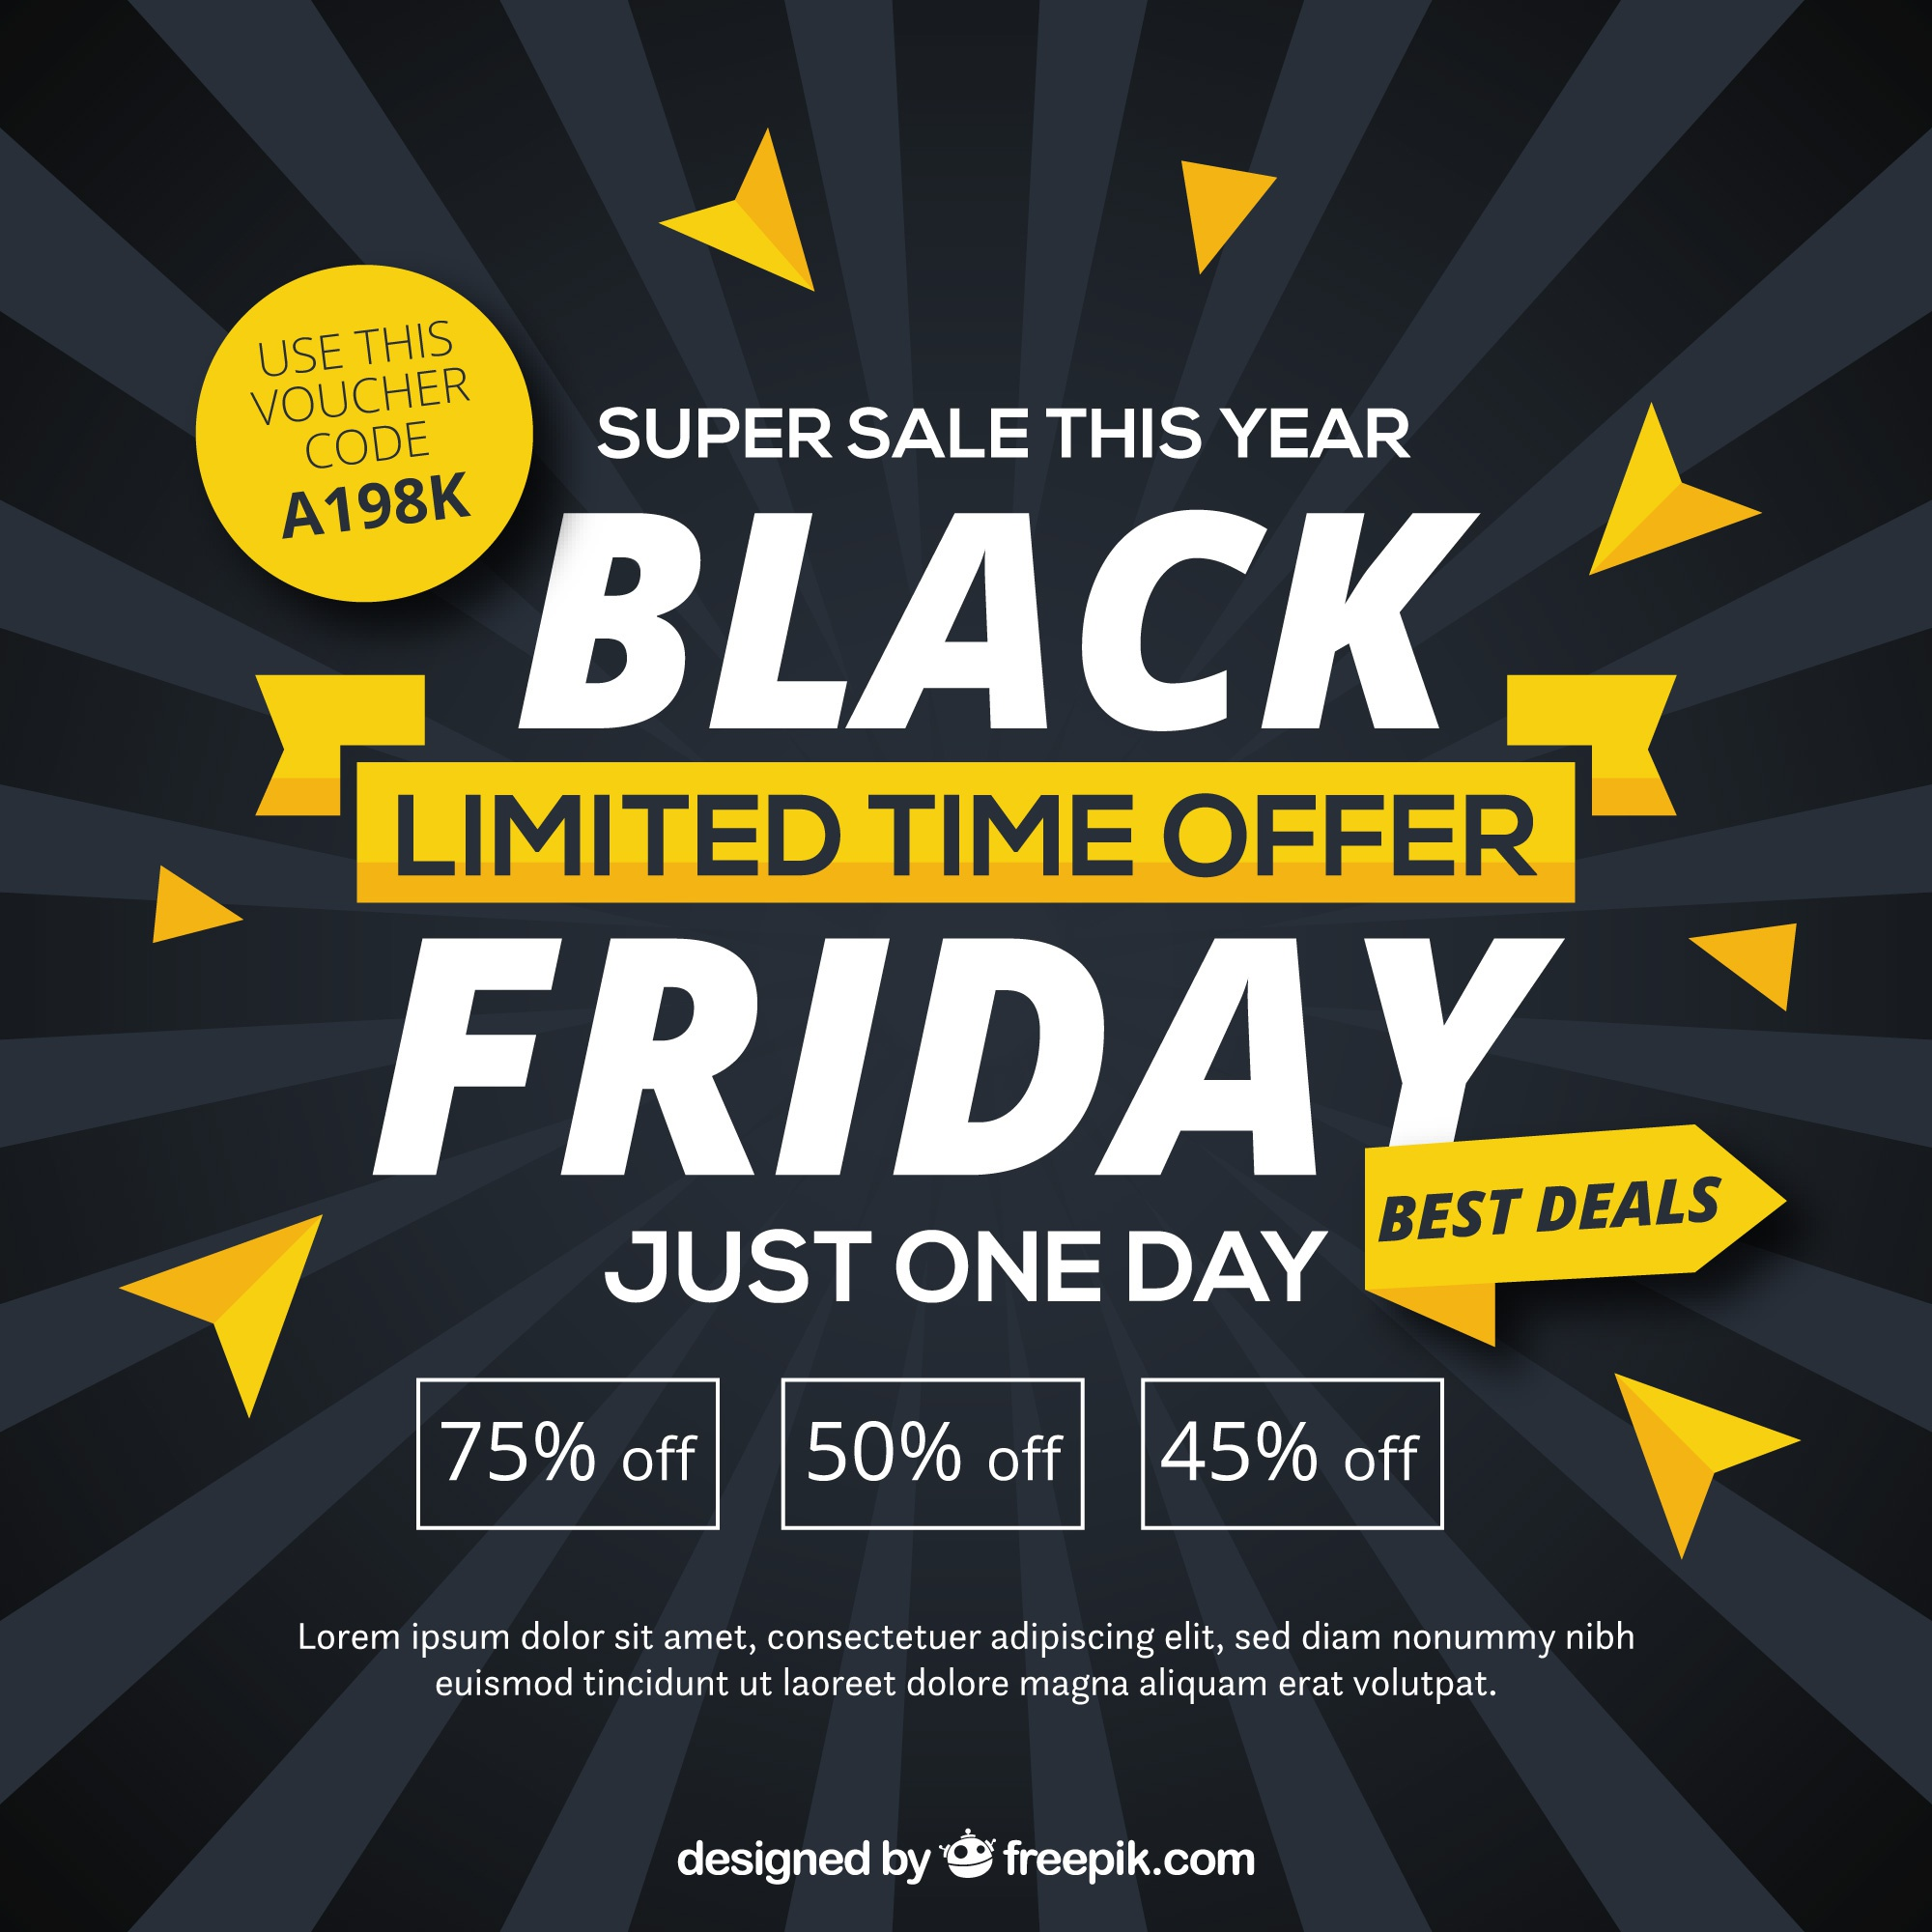 Black friday background with yellow details